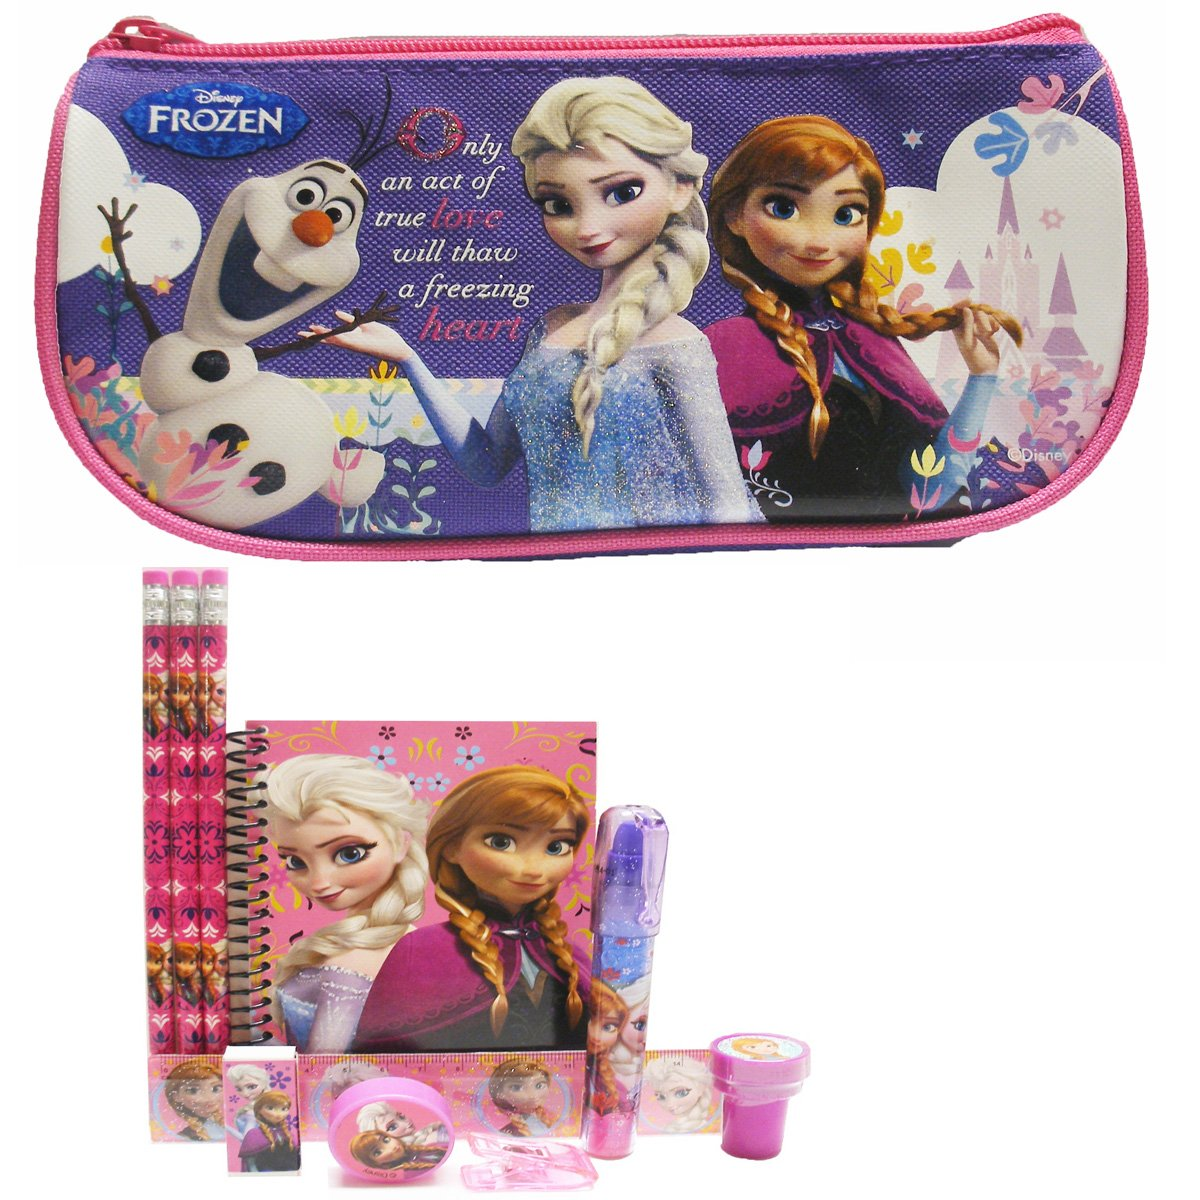 Disney Frozen Pencil Case/Cosmetic Bag with Stationery Set - Purple